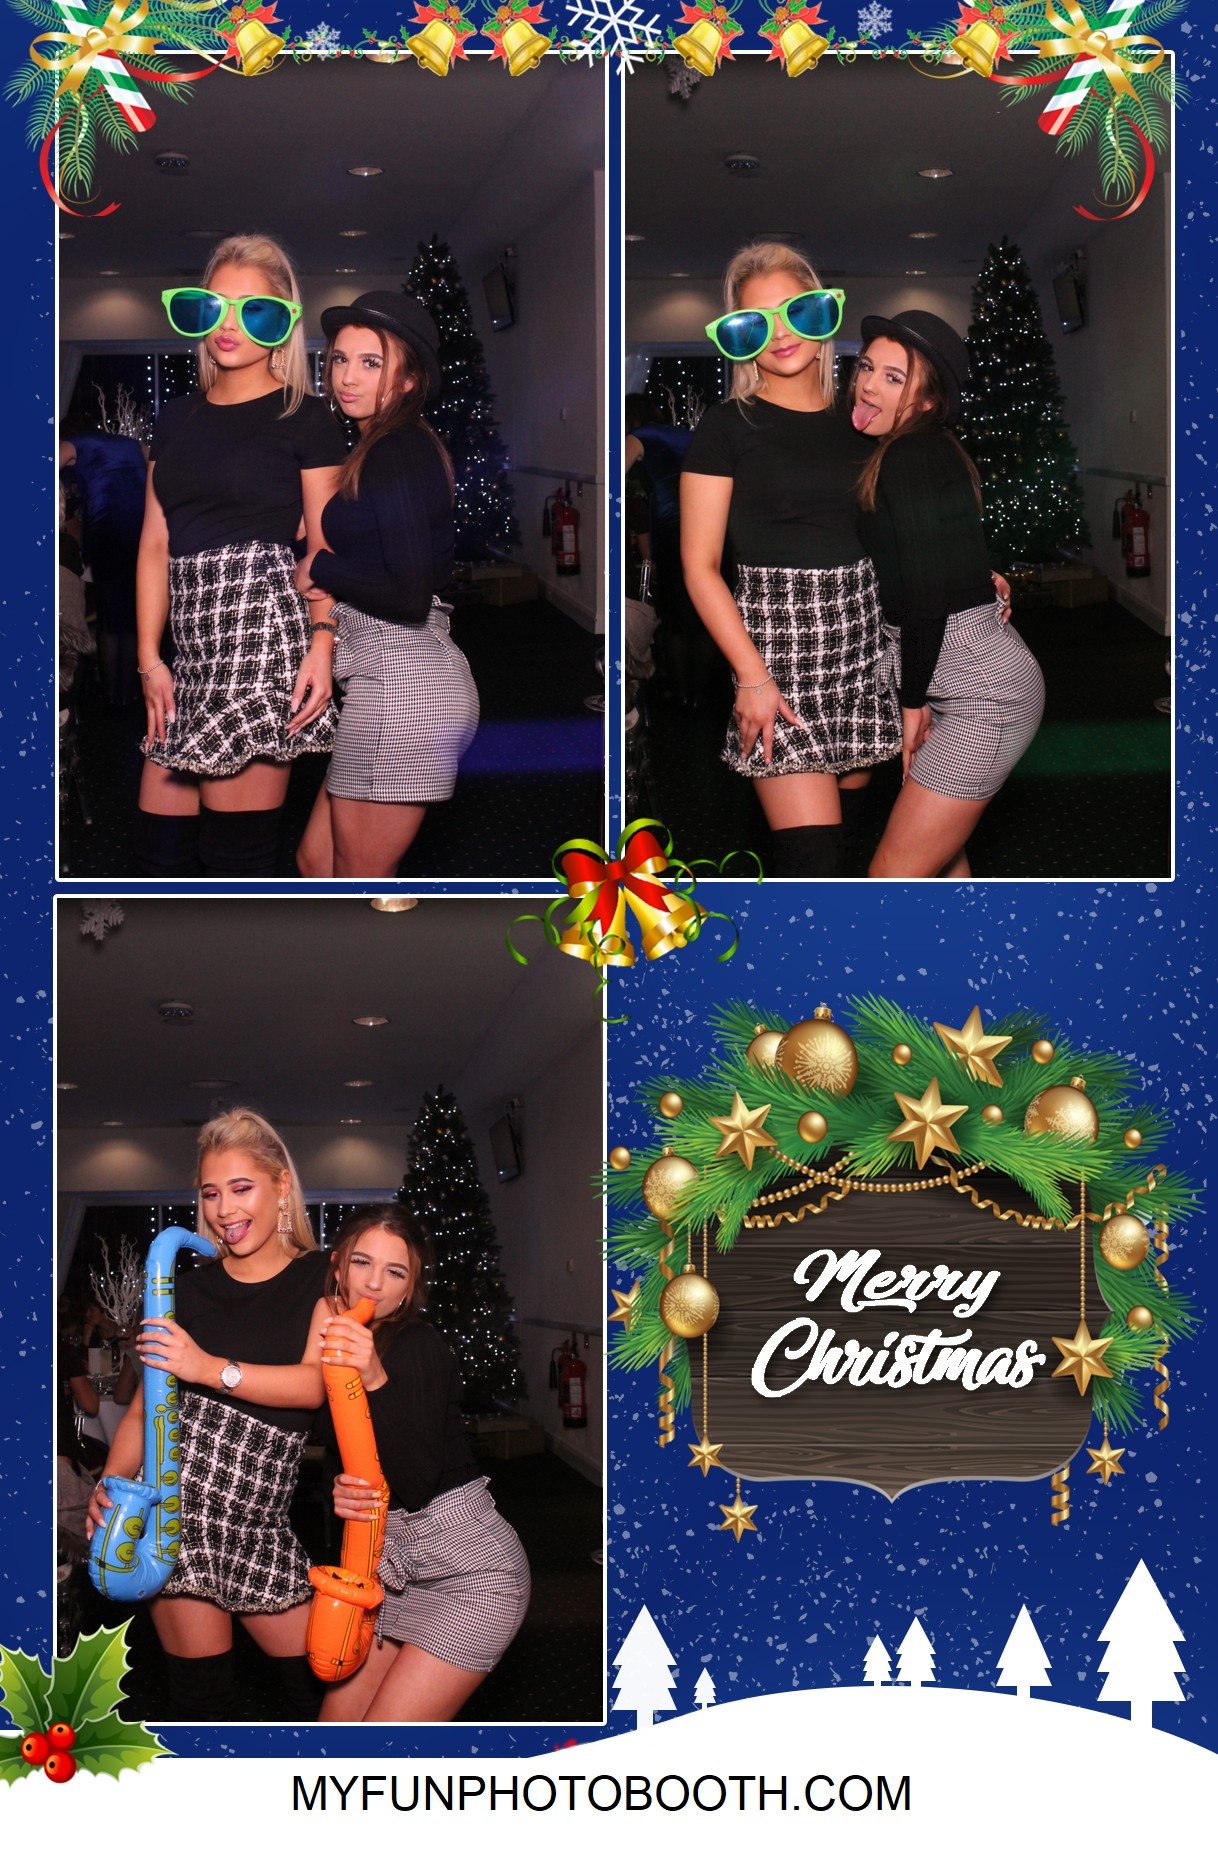 Christmas @ Sandown Park | View more photos from the event at gallery.myfunphotobooth.com/u/My-Fun-Photo-Booth/Christmas-Sandown-Park